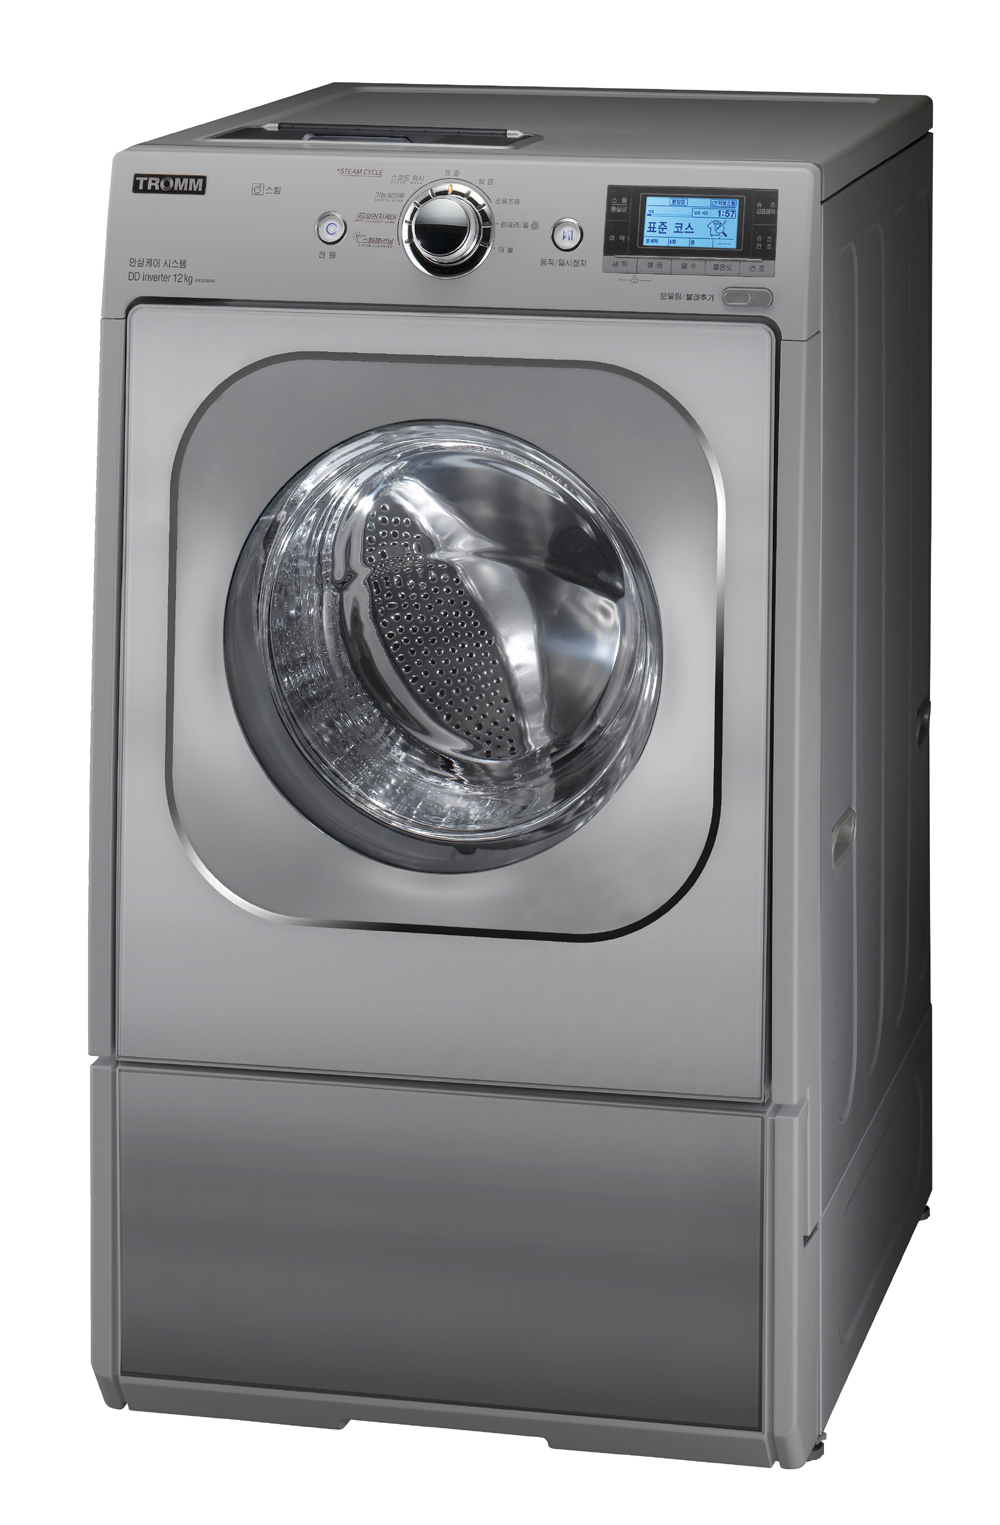 how to buy washing machine online, whirlpool washing machine, kenmore elite washer